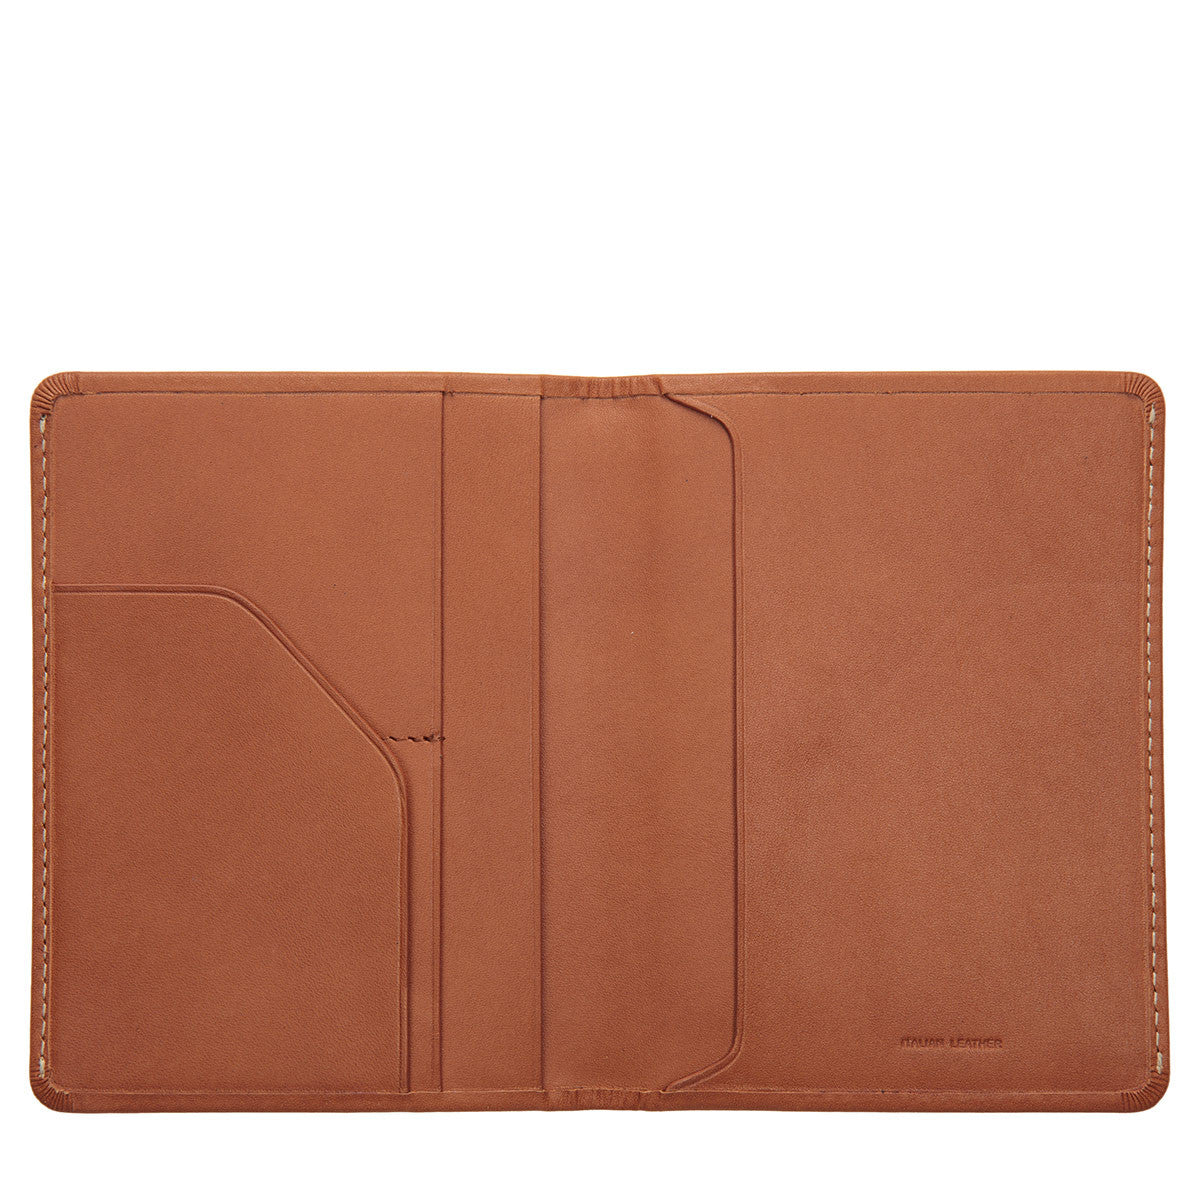 Conquest Passport Holder - Camel